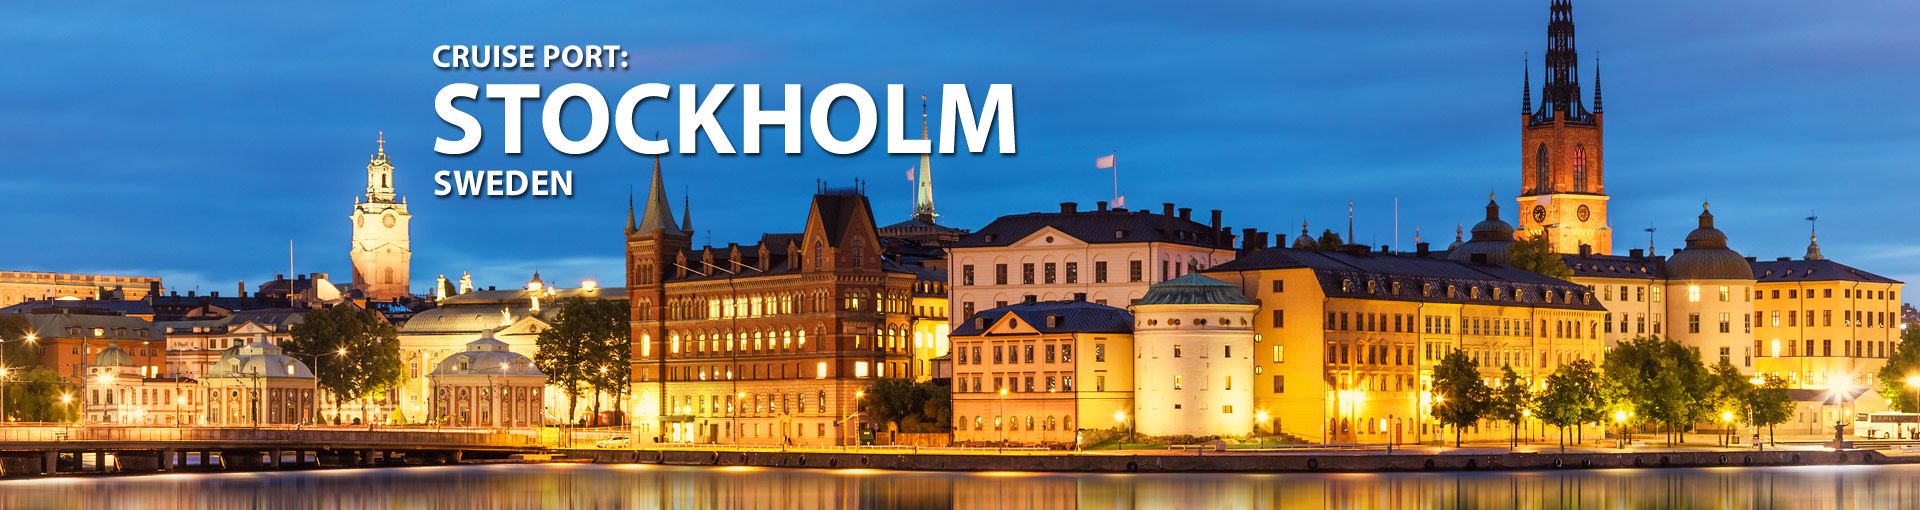 Cruises from Stockholm, Sweden